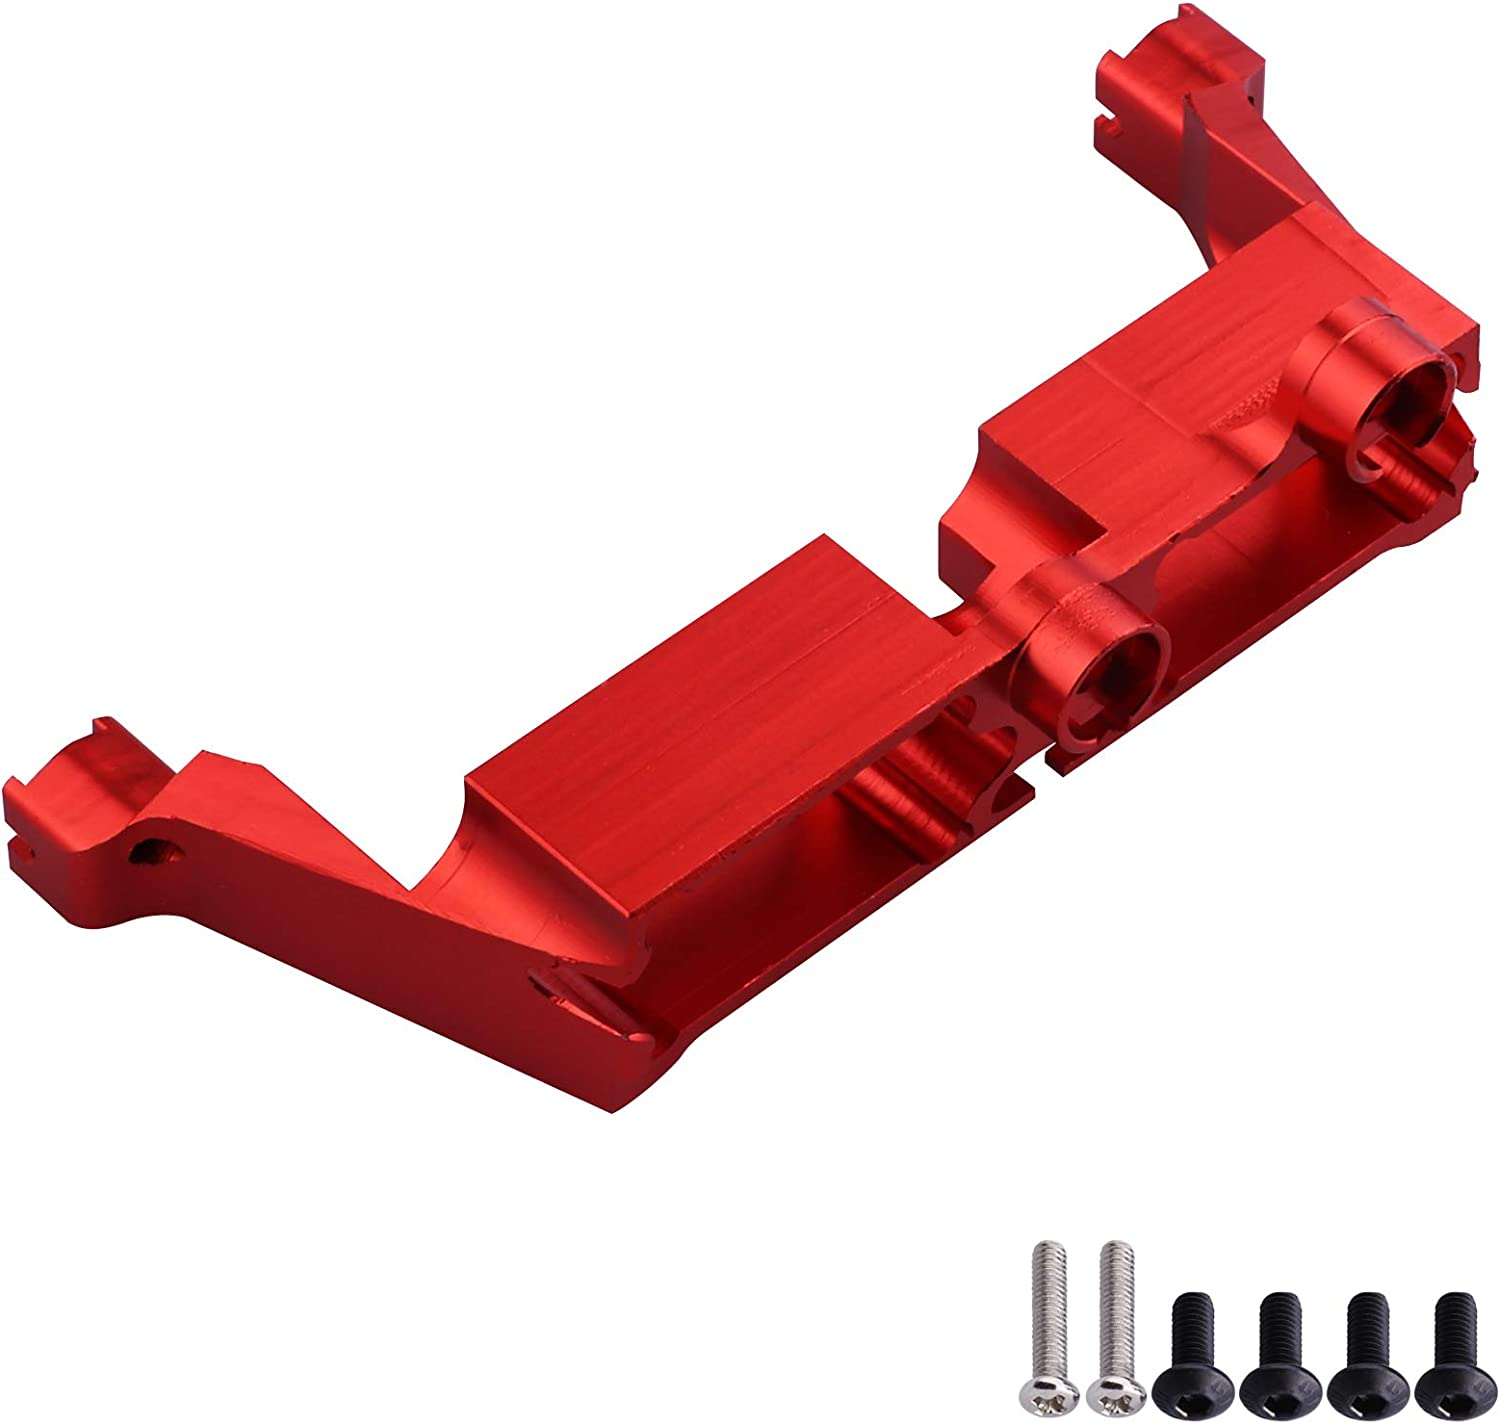 Hobbypark Aluminum Alloy Diff Transmission Locking Servo Mount for Traxxas TRX-4 Upgrades Parts Red